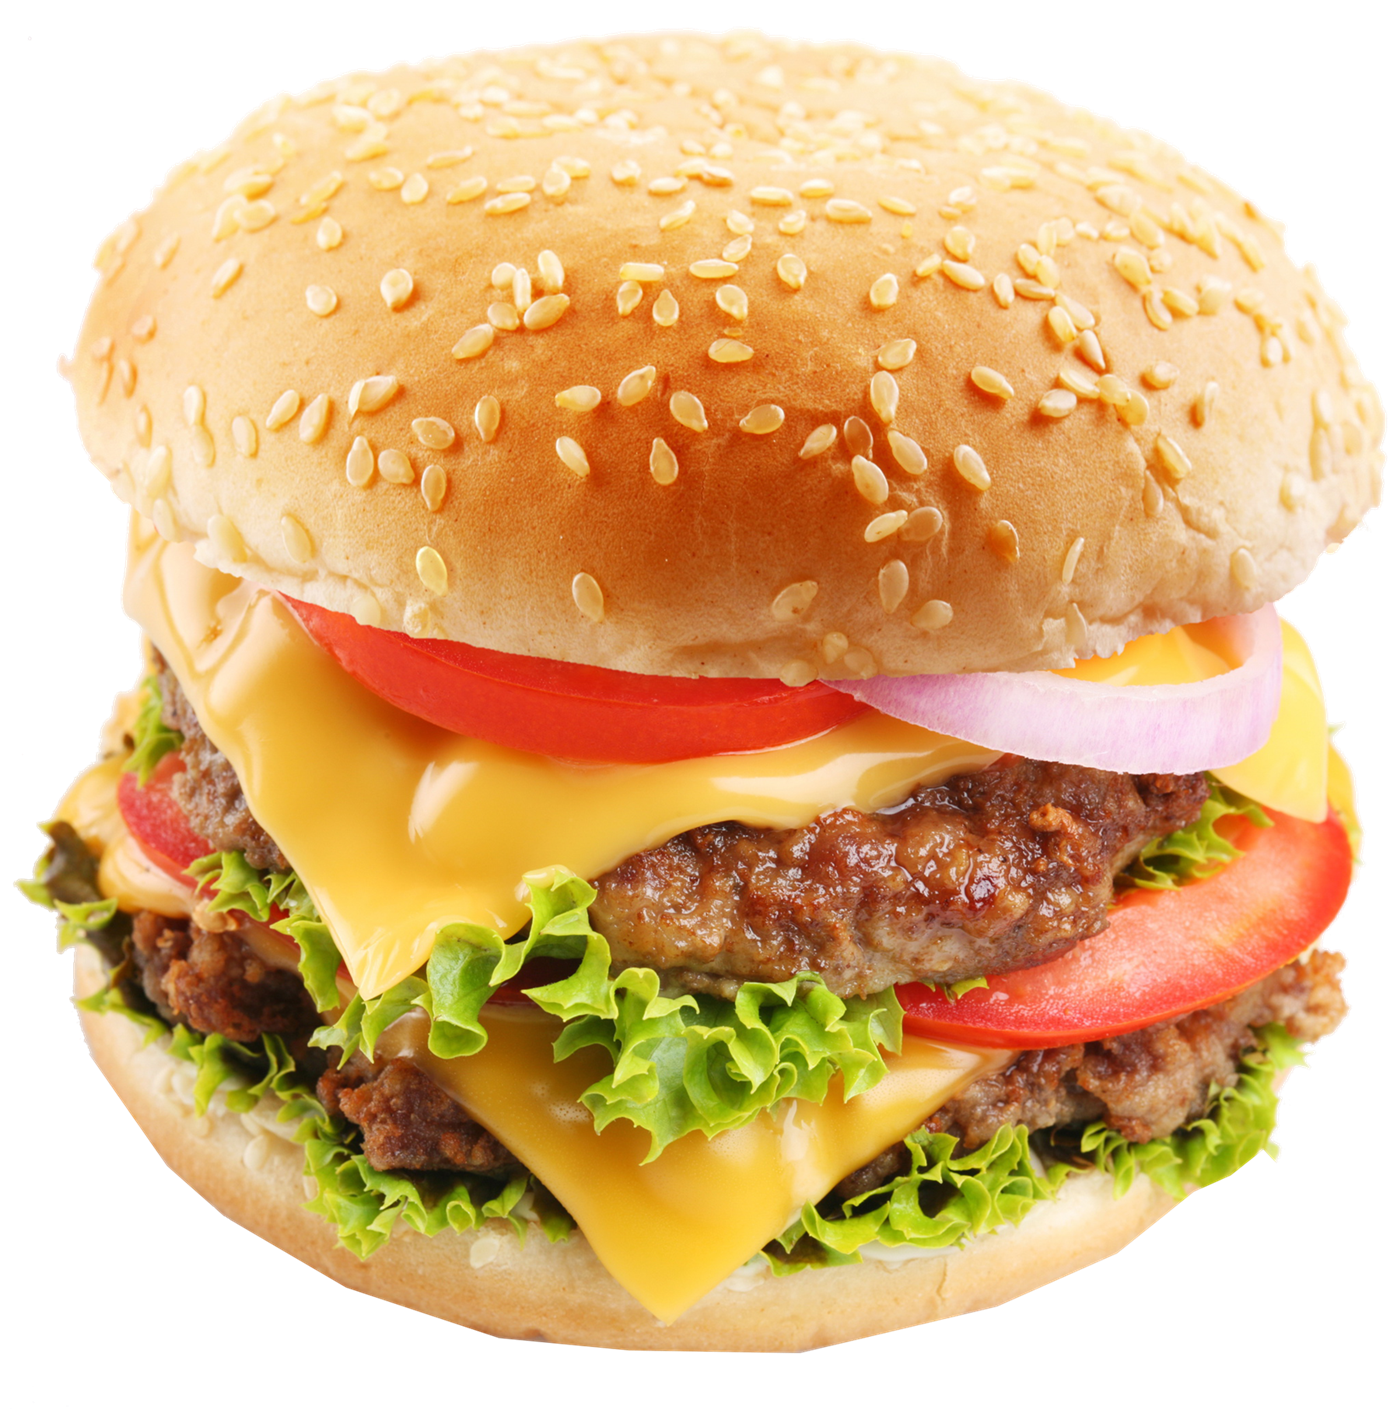 Cheeseburger PNG Images Transparent Background.